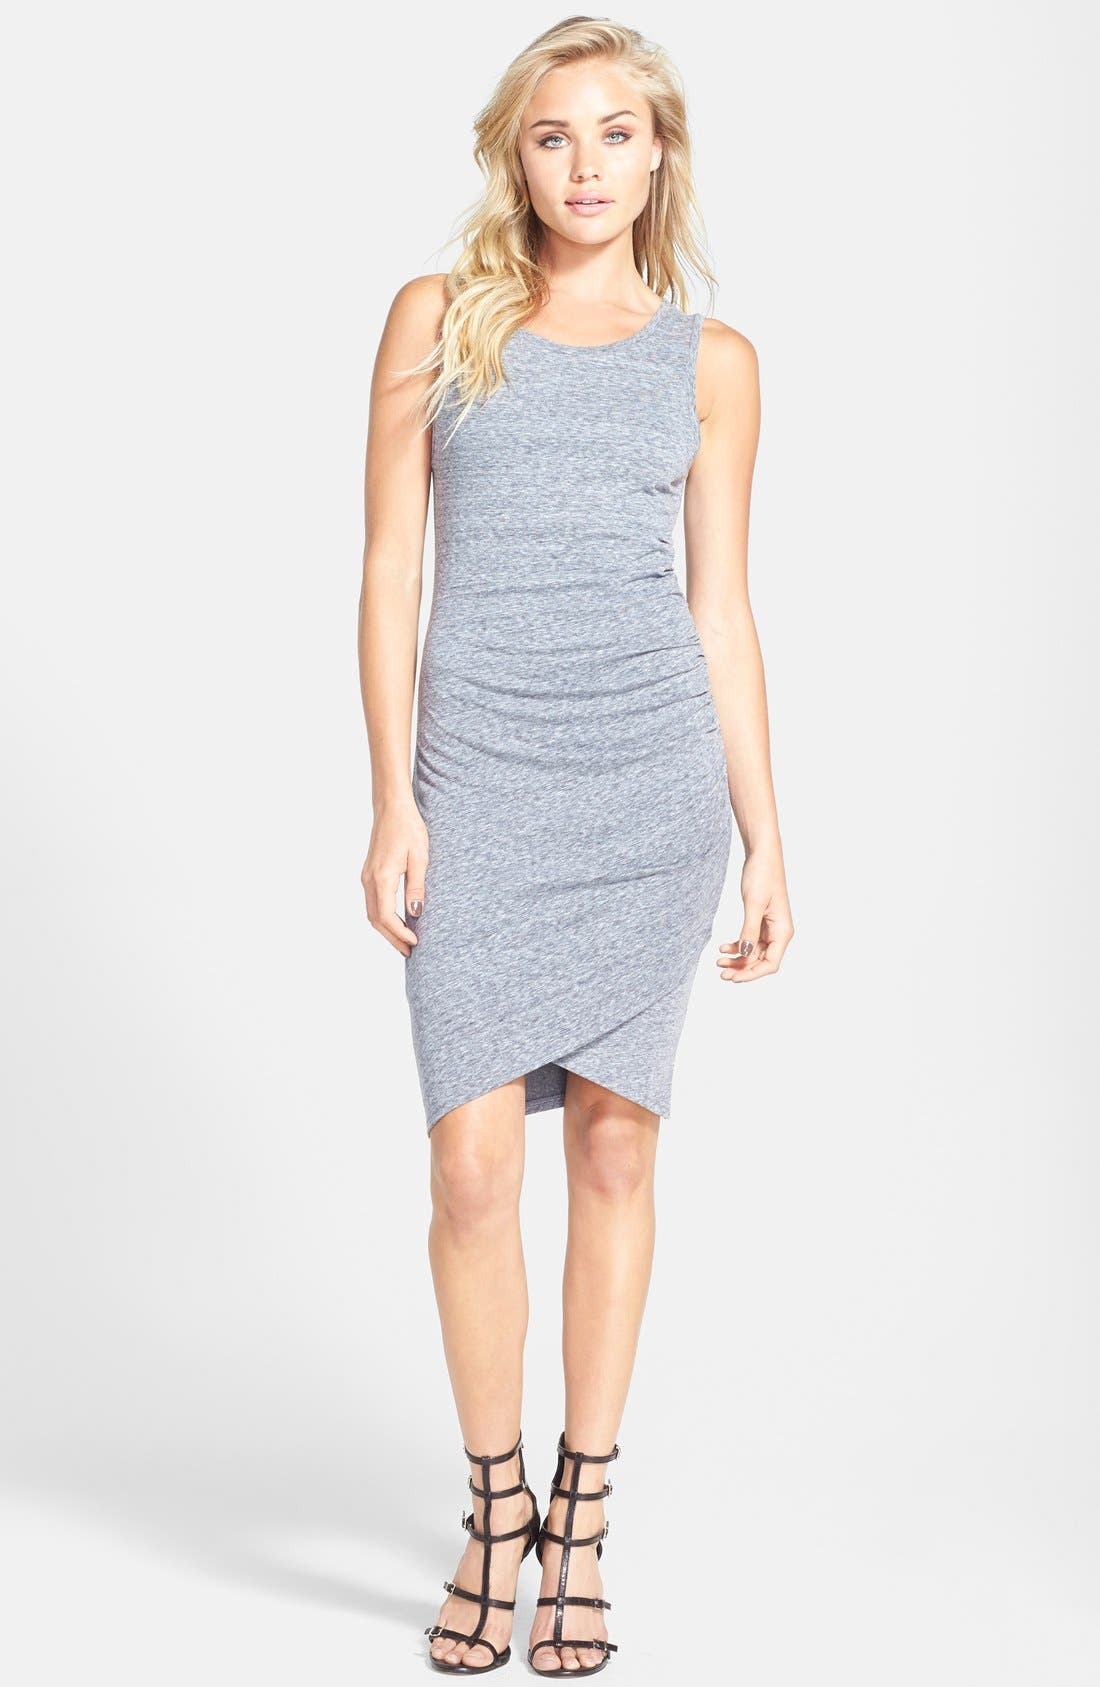 Casual Dresses: Sweater, Jersey, Boatneck & More   Nordstrom ...